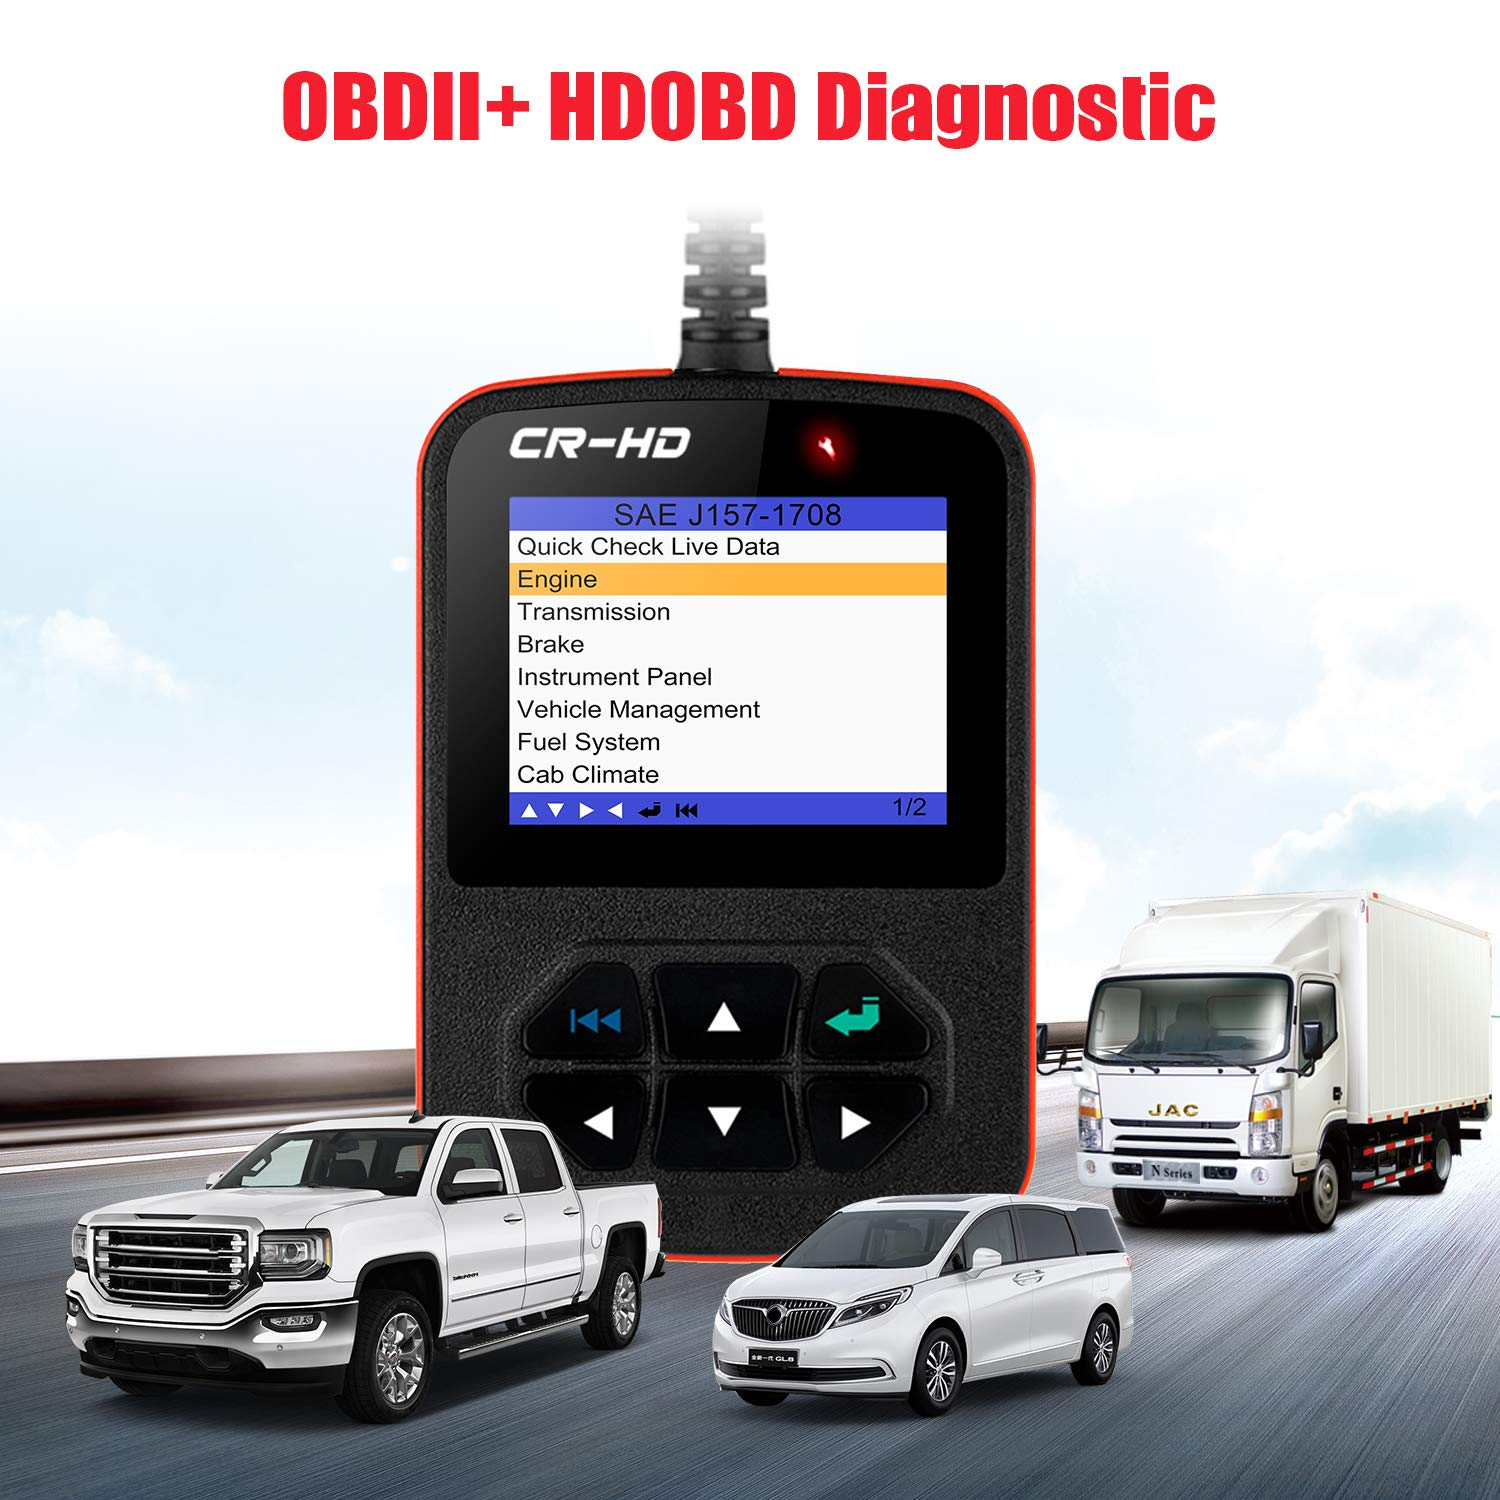 LAUNCH CReader HD Plus Heavy Duty Truck Obd2 Diagnostic Reader OBDII Scan  Tool CRHD Truck Code Scanner With OBD-II Communication Modes 1-10 and  J1587,